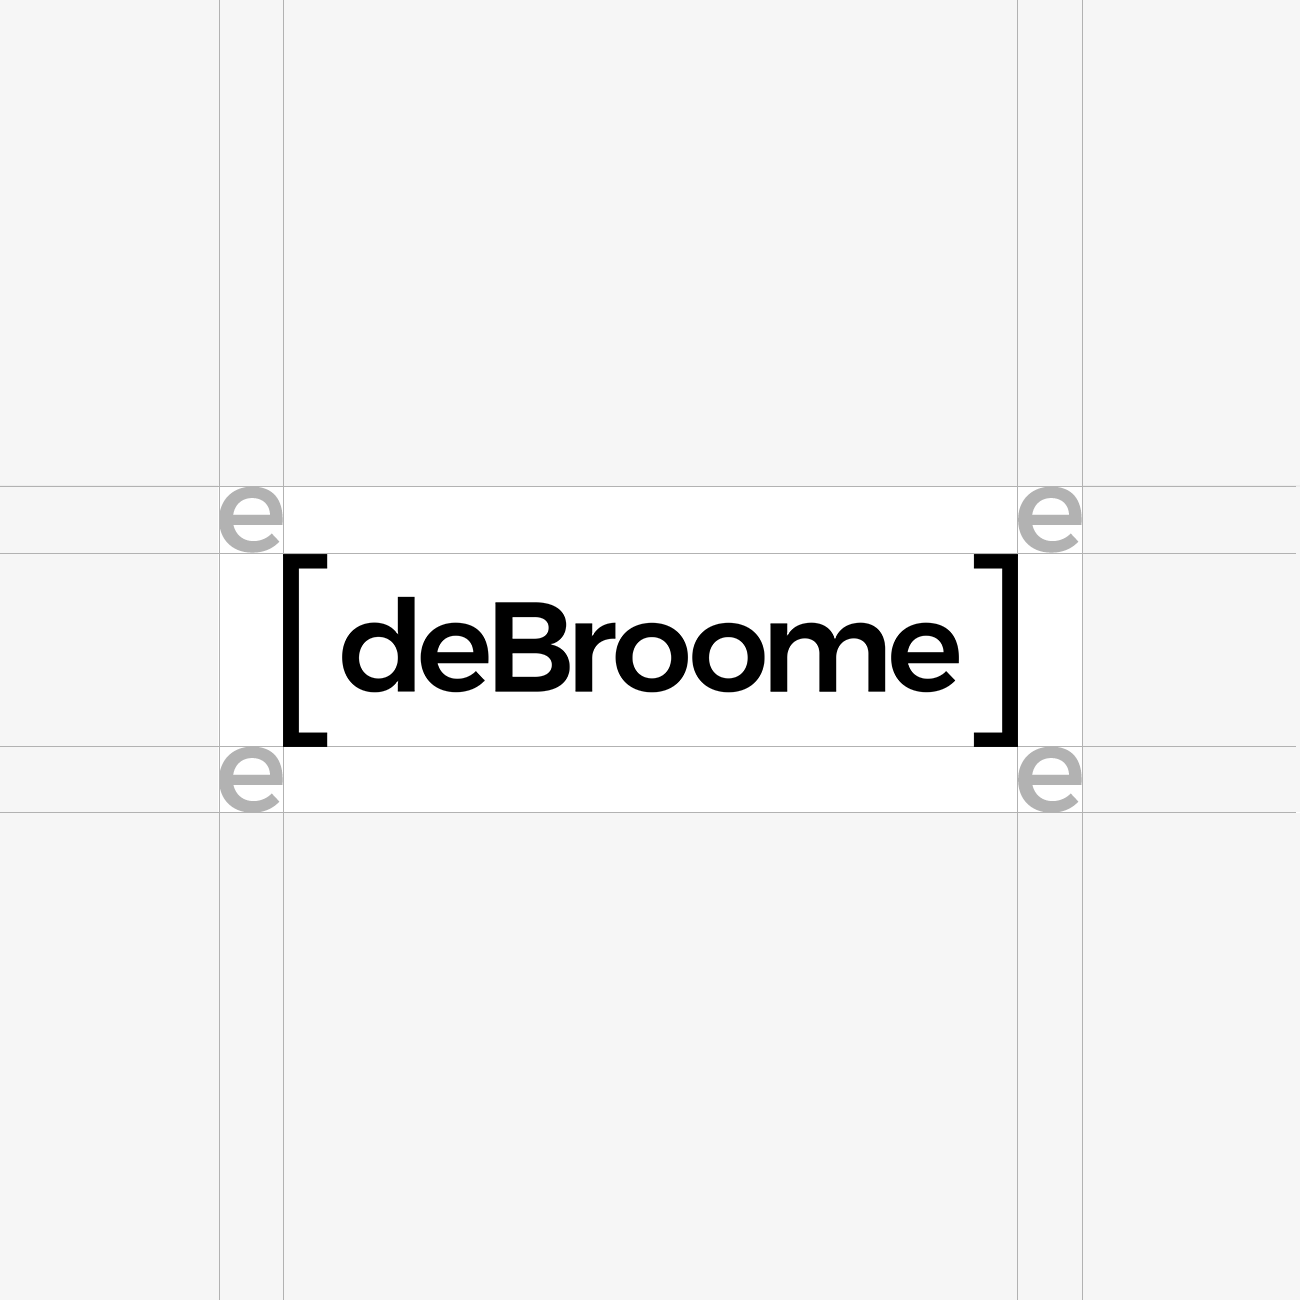 deBroome logo with clear space rules using the letter